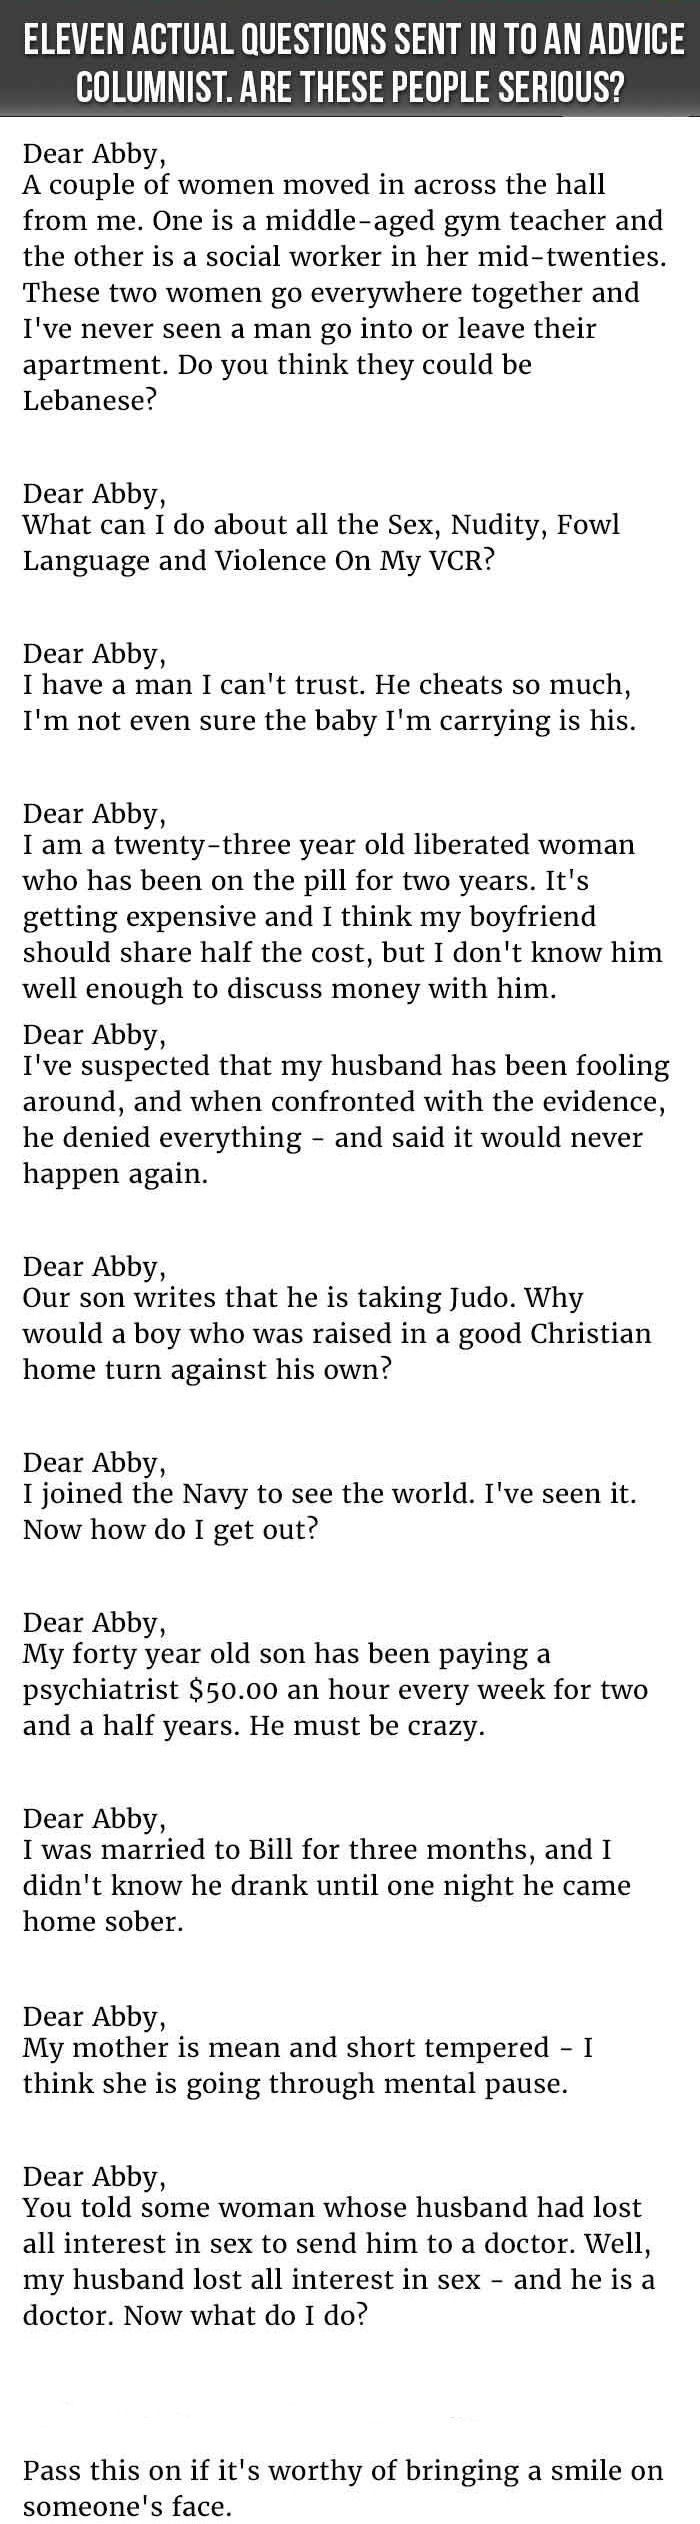 11 Hilarious Questions Sent In To An Advice Columnist funny jokes story lol funny quote funny quotes funny sayings joke humor stories hilarious funny jokes